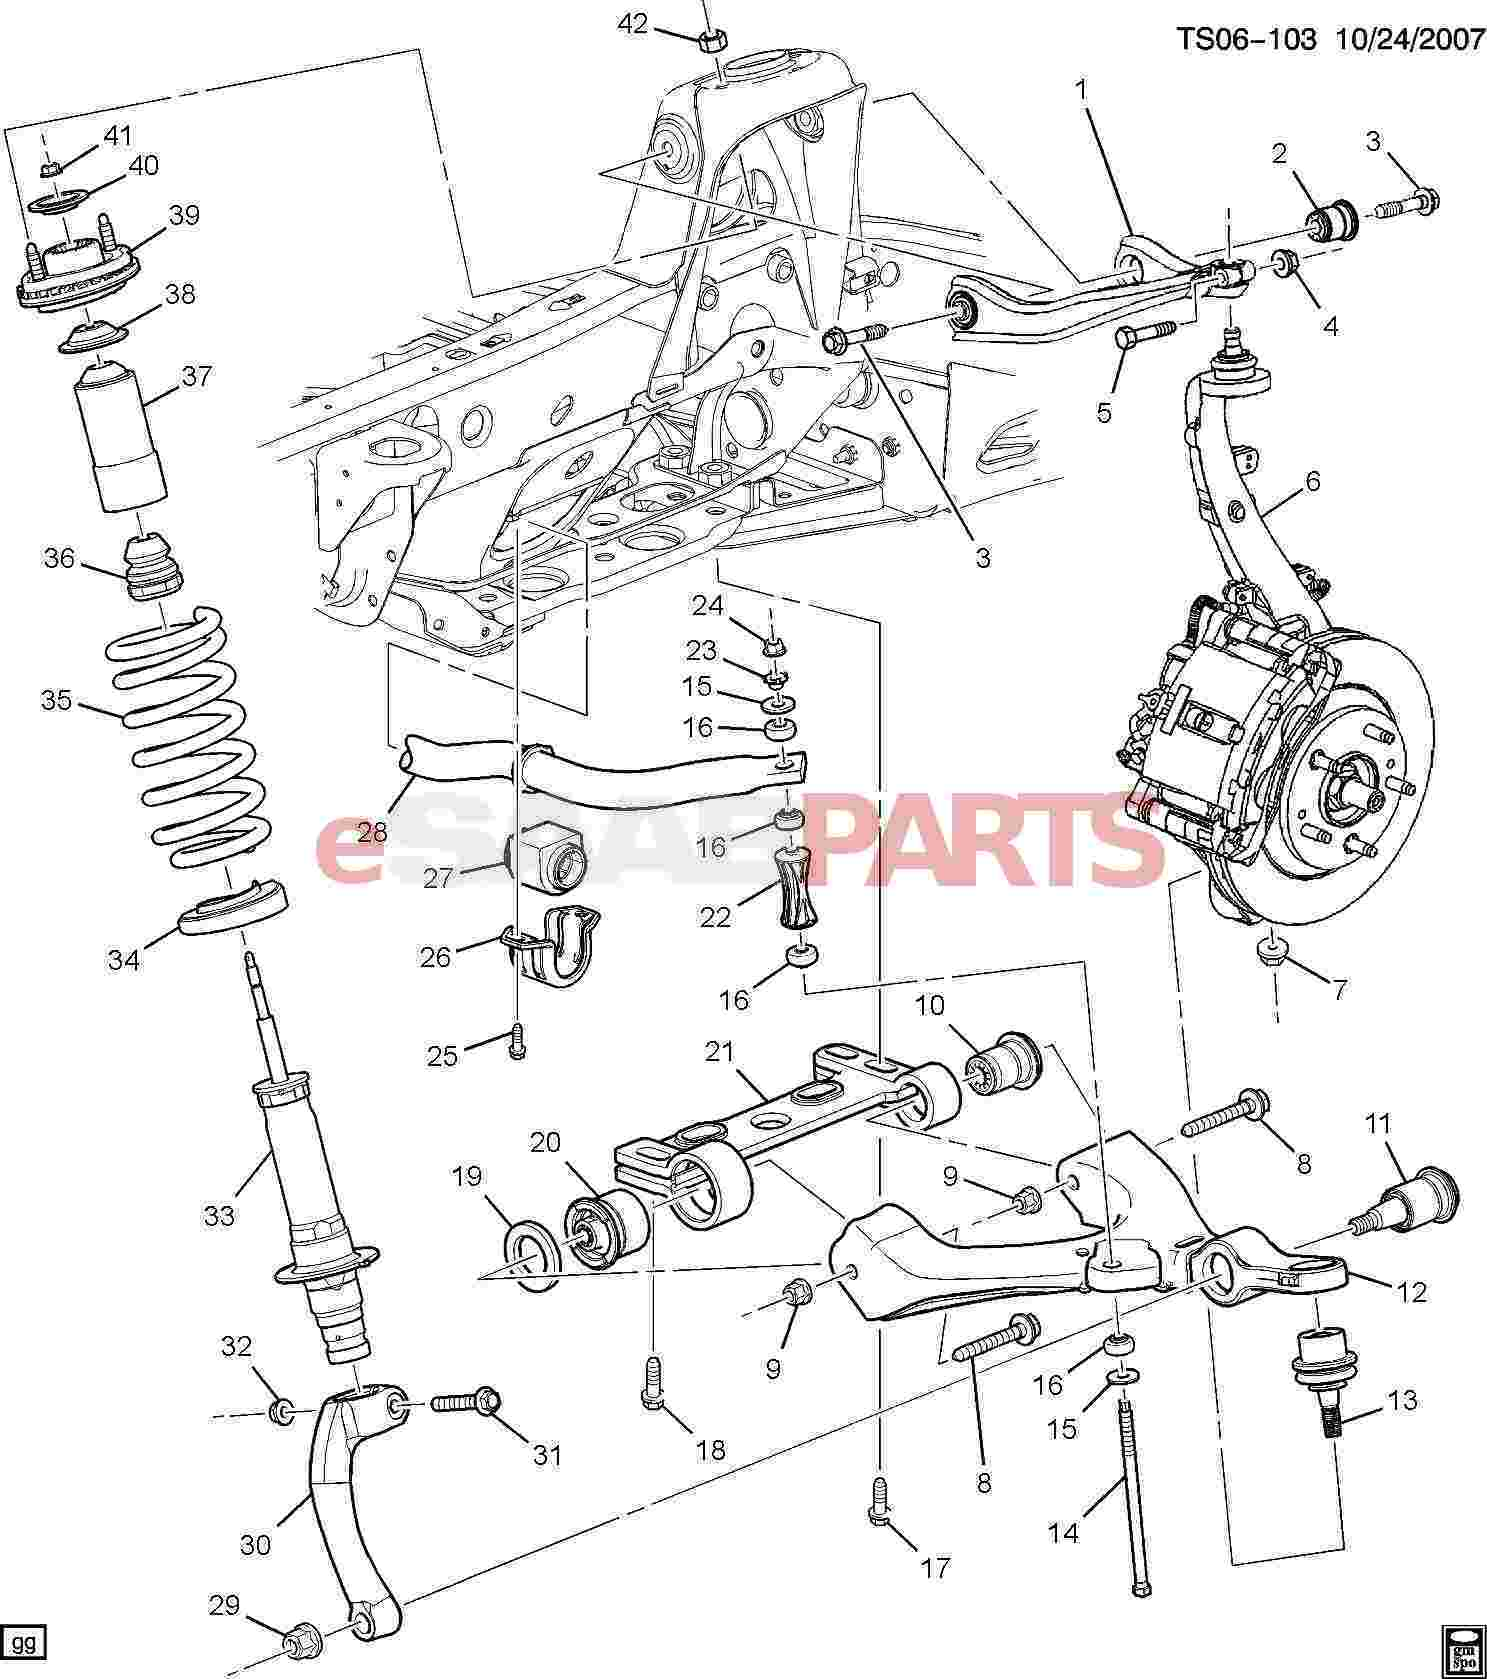 2005 Saab 9 3 Suspension Diagram in addition 2001 Kia Sephia Fuel Pump Wiring also P 0900c15280054362 also Audi 9000 Engine Diagram besides Wiring Diagram 1999 Saab 9 3 Speakers. on saab 900 engine